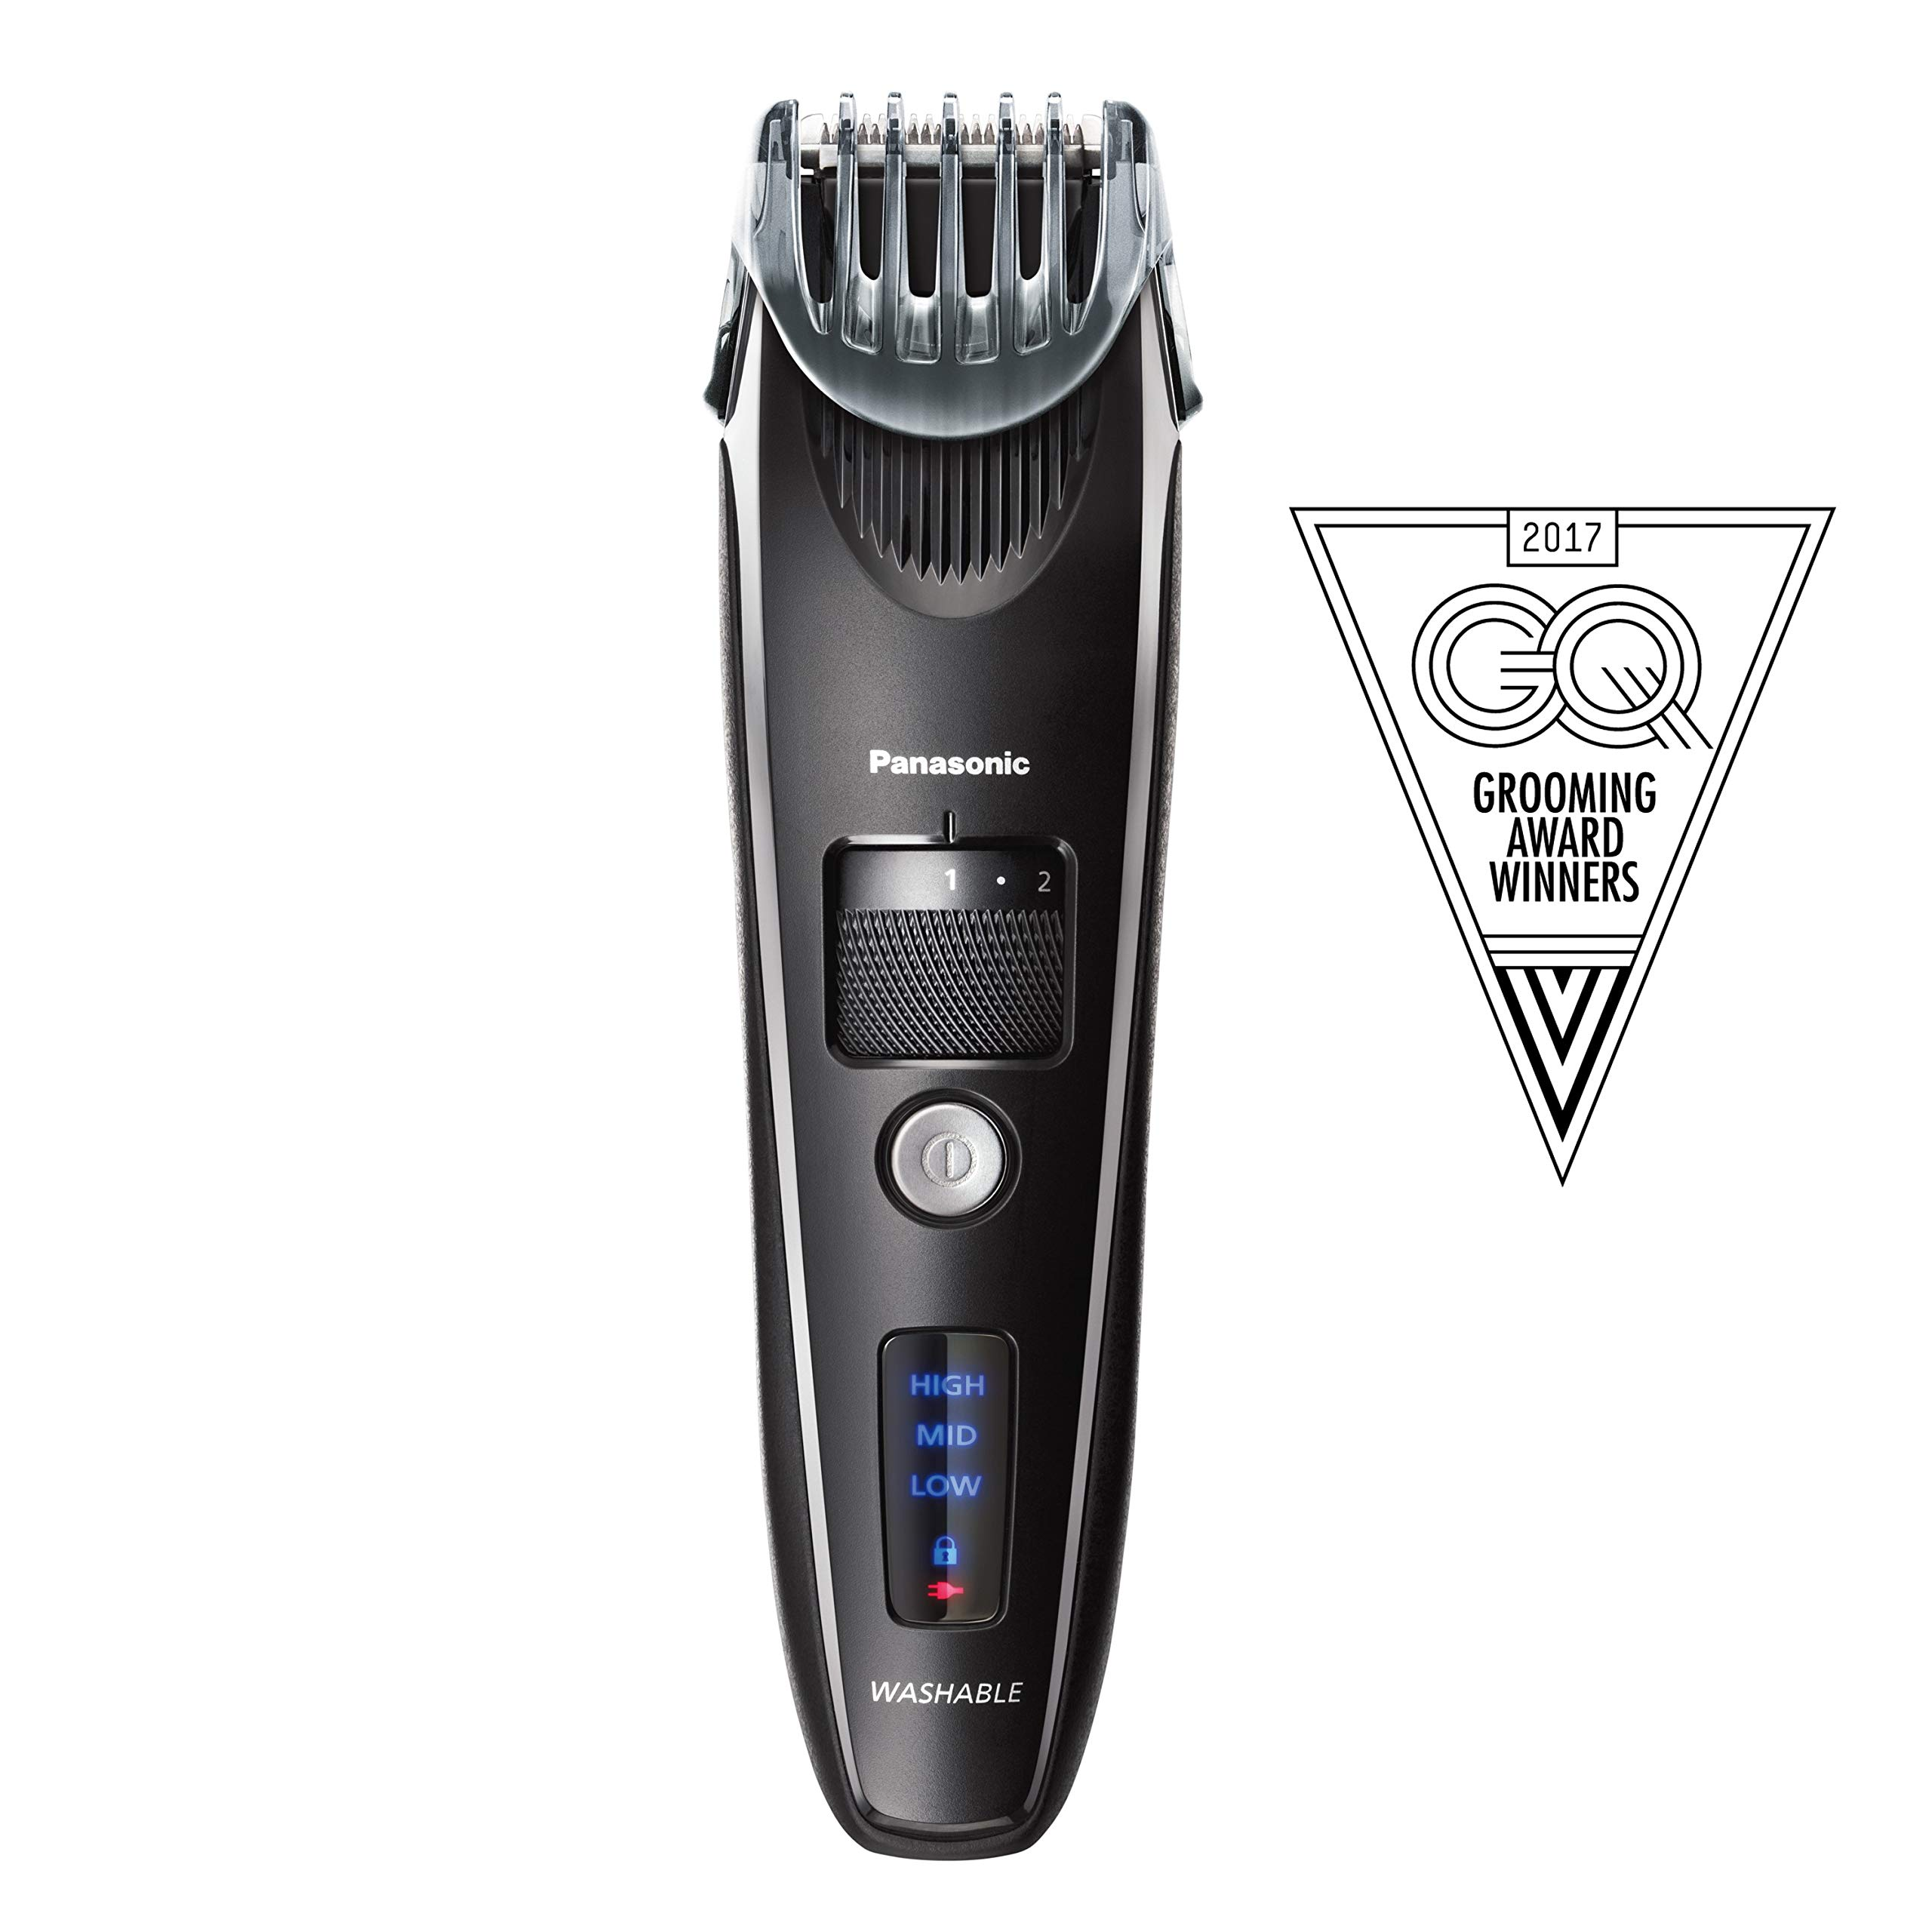 Panasonic Beard Trimmer for Men ER-SB40-K, Cordless/Corded Precision Power, Hair Clipper with Comb Attachment and 19 Adjustable Settings, Wet/Dry Use by Panasonic